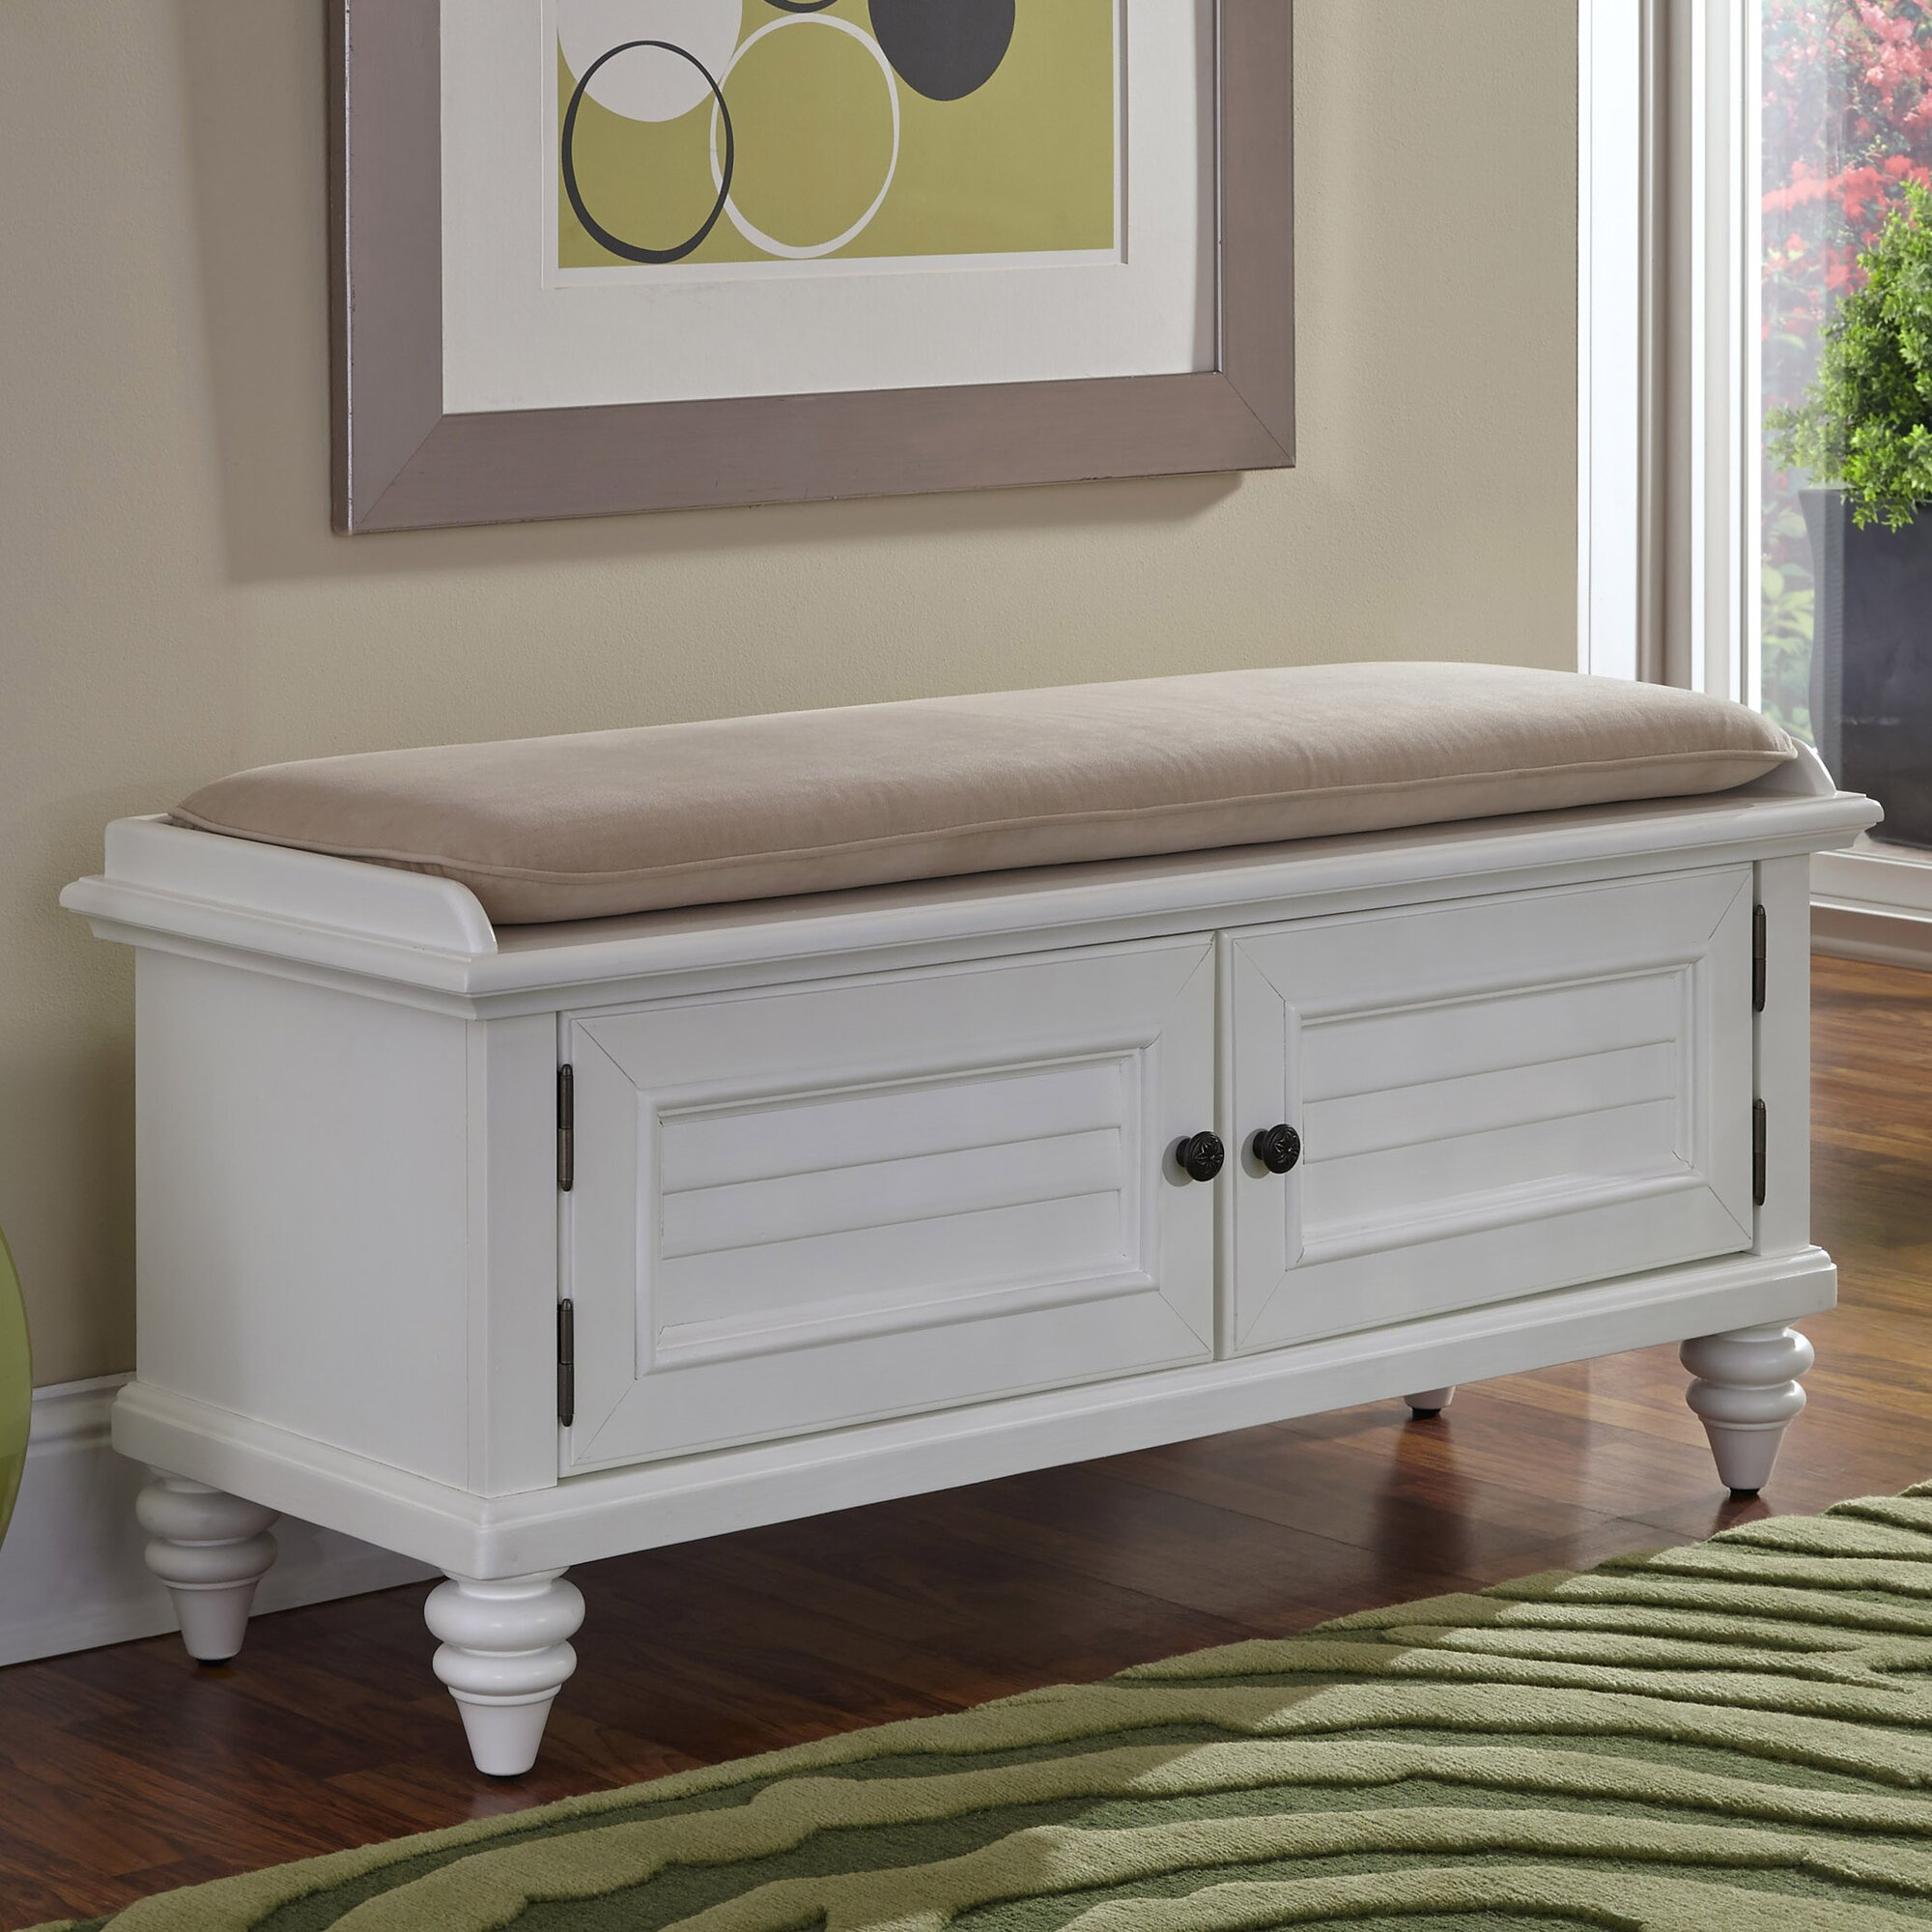 adorable entryway benche with storages | Breakwater Bay Kenduskeag Upholstered Storage Entryway ...